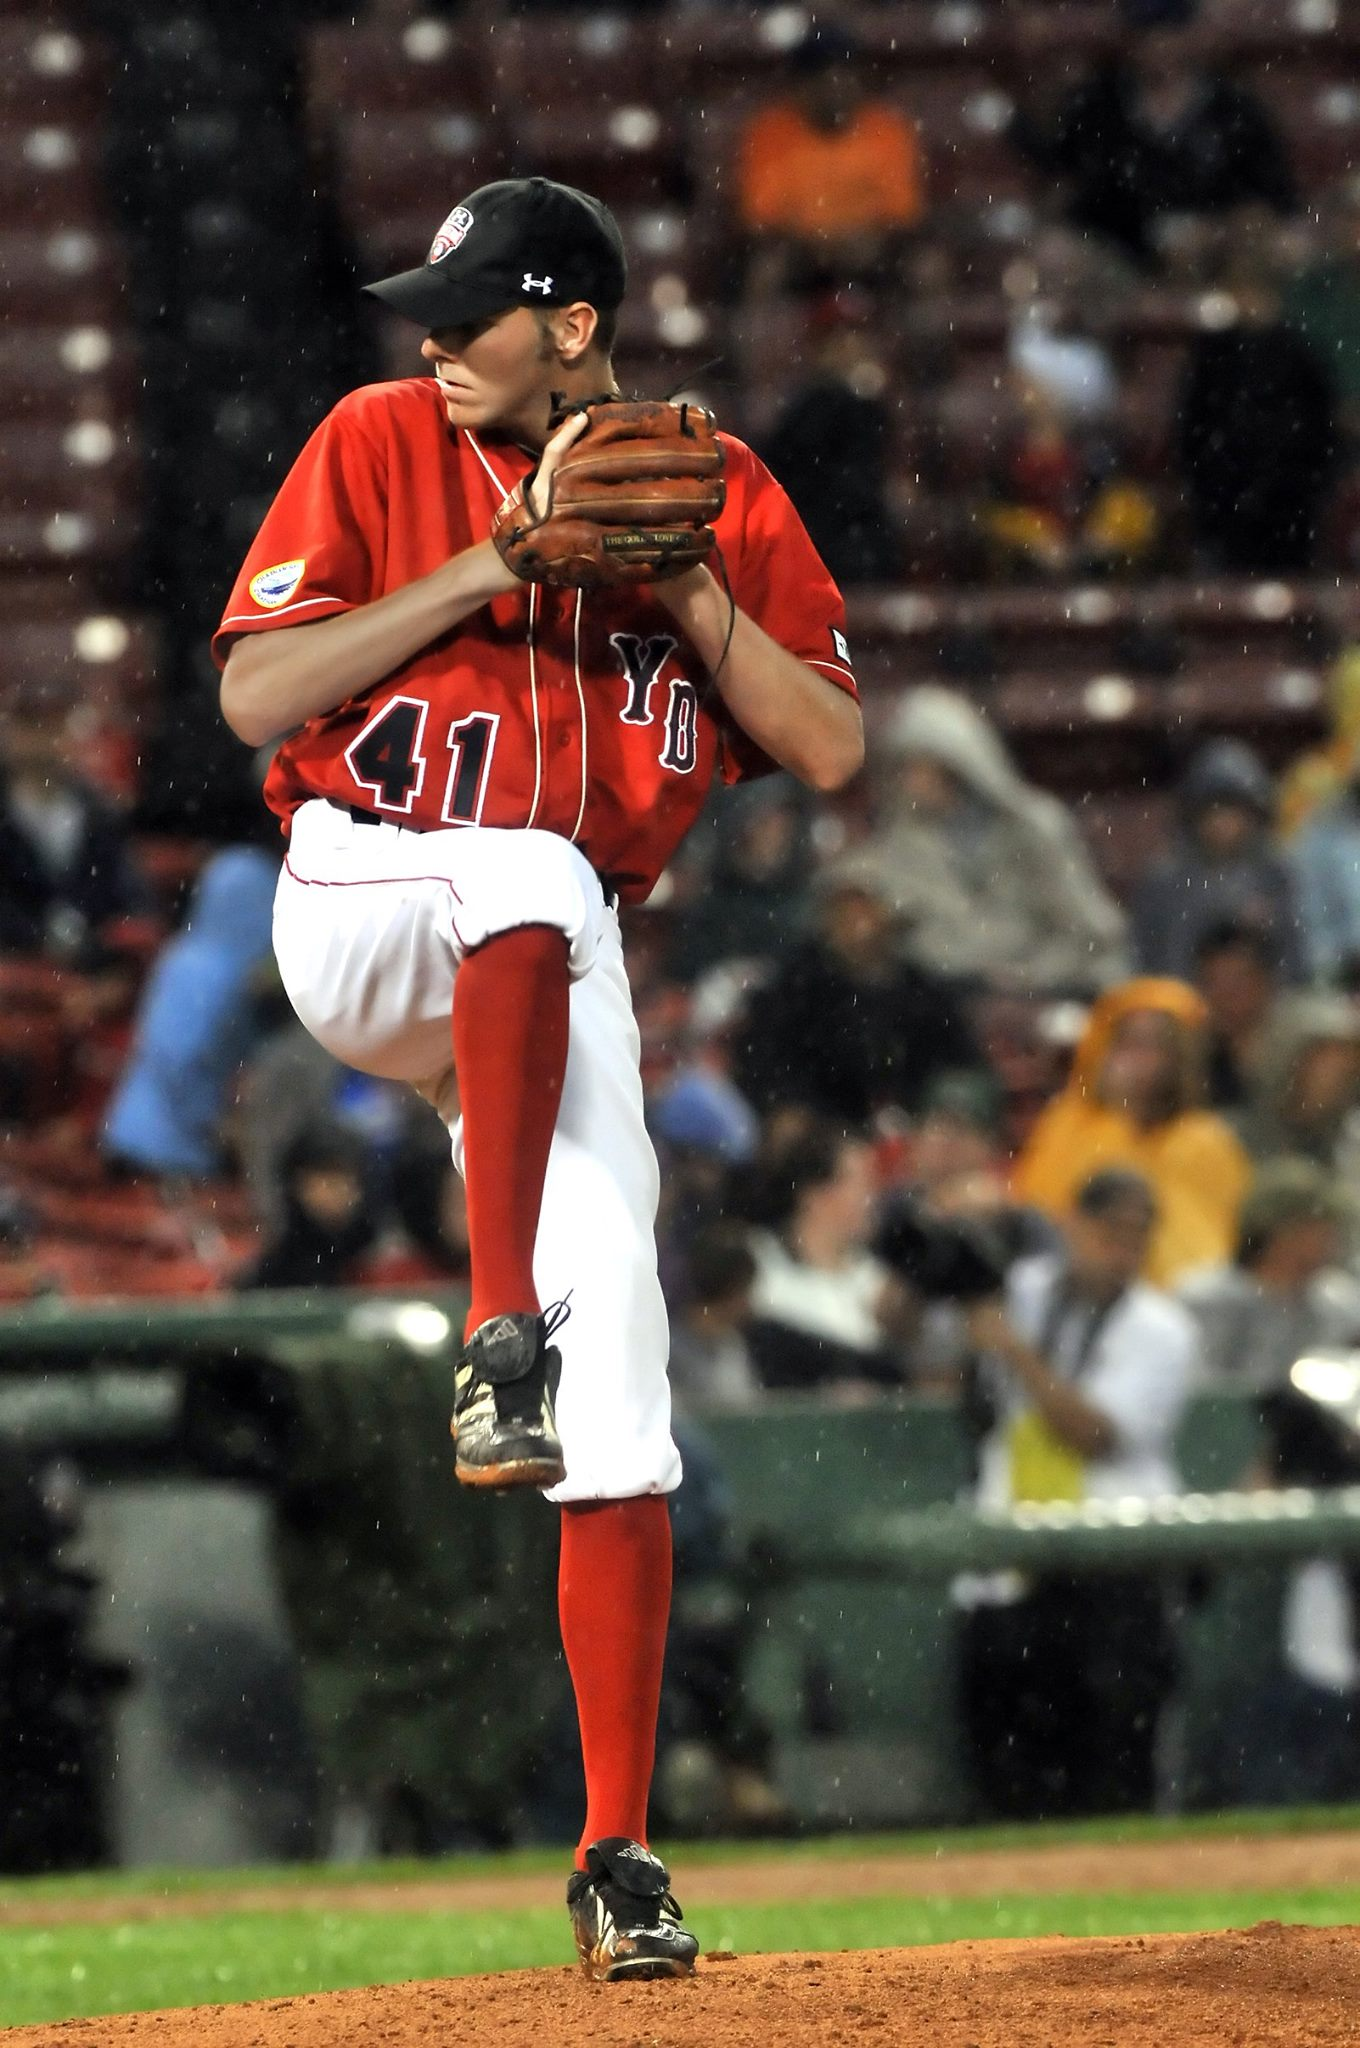 Chris Sale (Y-D '09) became first MLB pitcher since 2002 to record 170 K's before All-Star break. Sale, shown in SportsPix photo at 2009 CCBL All-Star Game at Fenway Park, was Cape League's Outstanding Pitcher and East ASG MVP. He's odds-on choice to start mid-summer classic for American League.